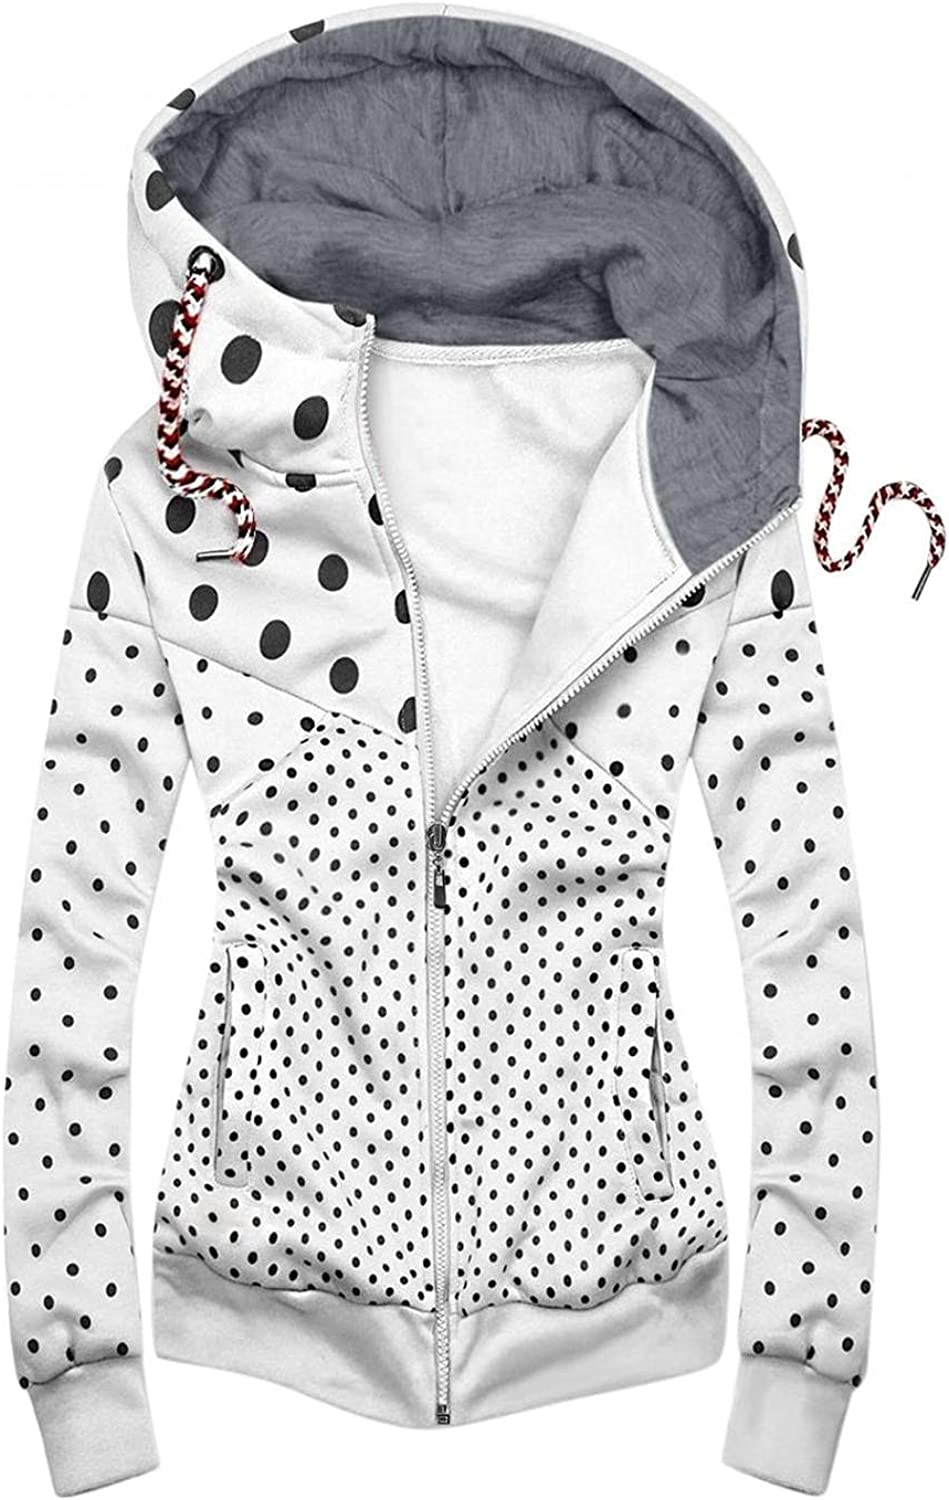 UOCUFY Hoodies for Womens Autumn Fashion Casual Loose Drawstring Long Sleeve Pullover Hooded Sweatshirt Outwear with Pockets